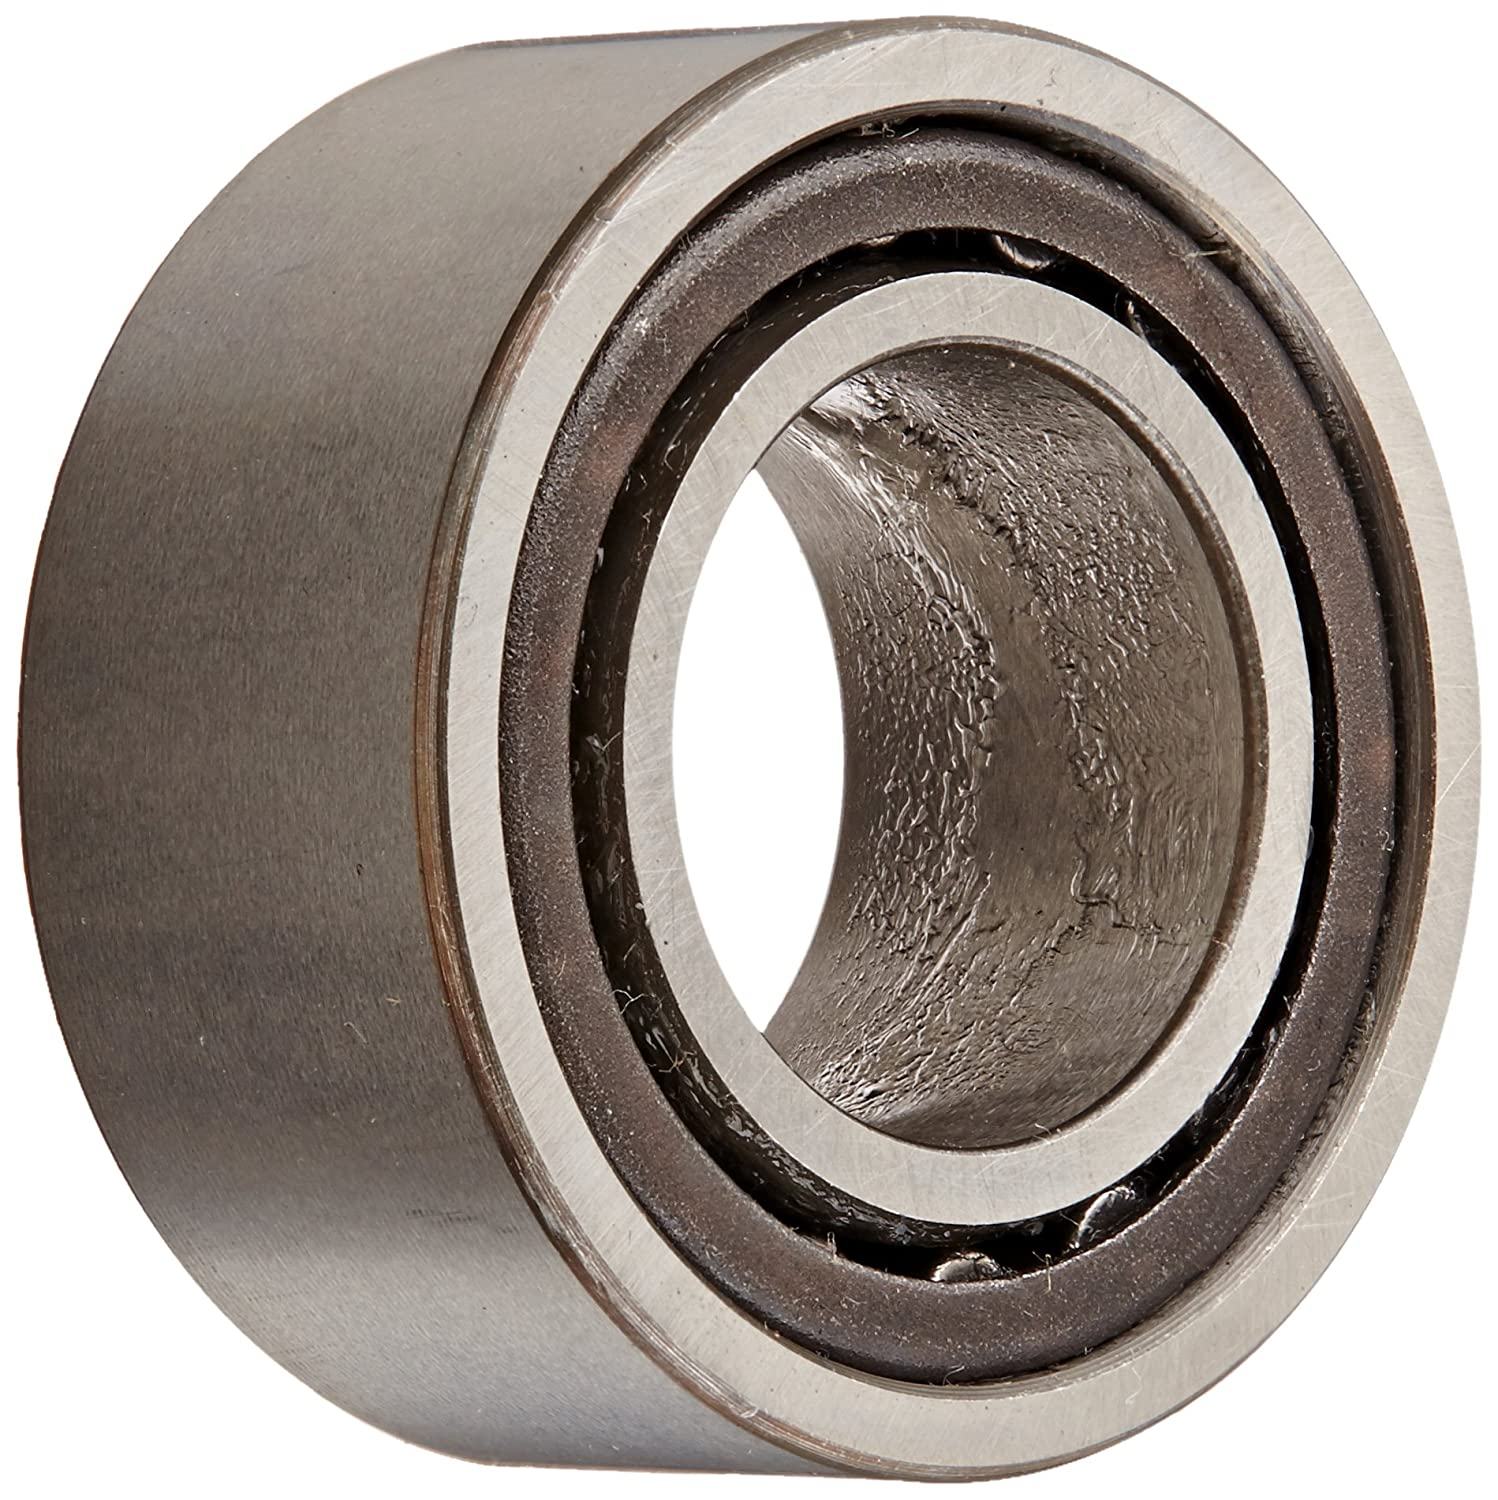 Metric Steel Cage 17000rpm Maximum Rotational Speed 20mm ID Open End INA NAO20X37X16 Needle Roller Bearing 16mm Width 37mm OD With Inner Ring